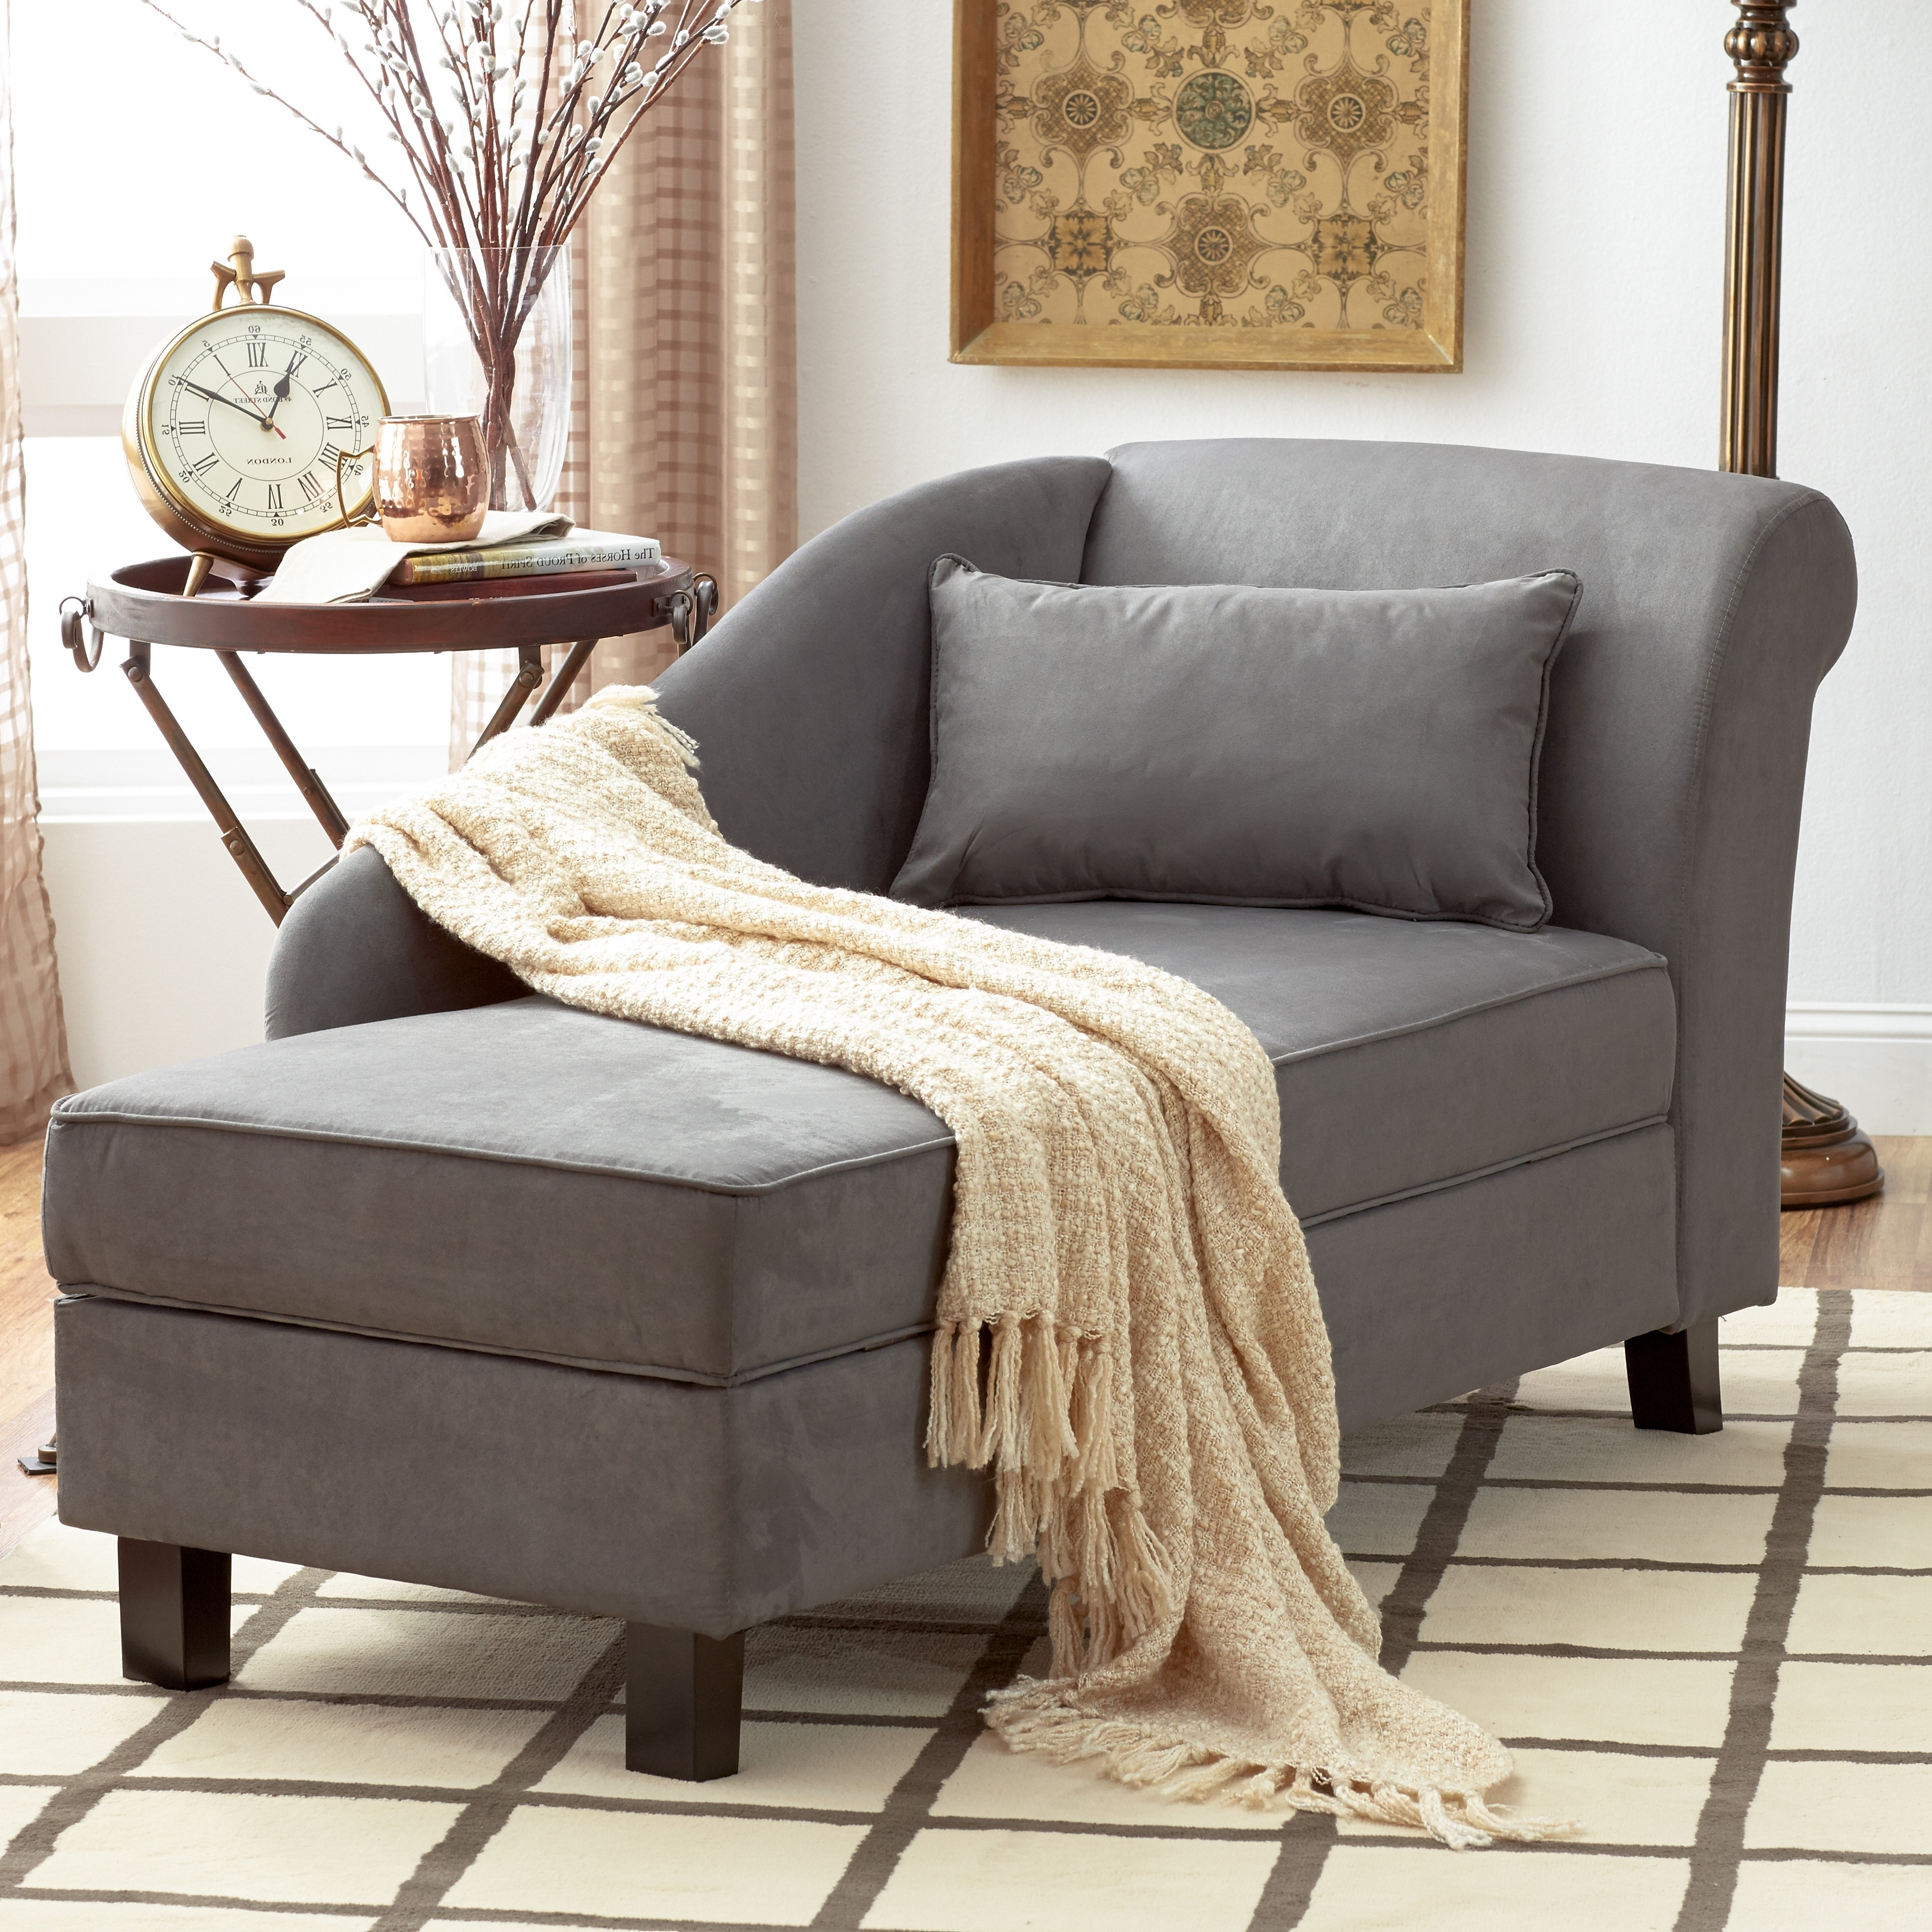 Most Recently Released Brilliant Chaise Lounge With Storage With Indoor Chaise Lounge Intended For Chaise Lounges With Storage (View 5 of 15)